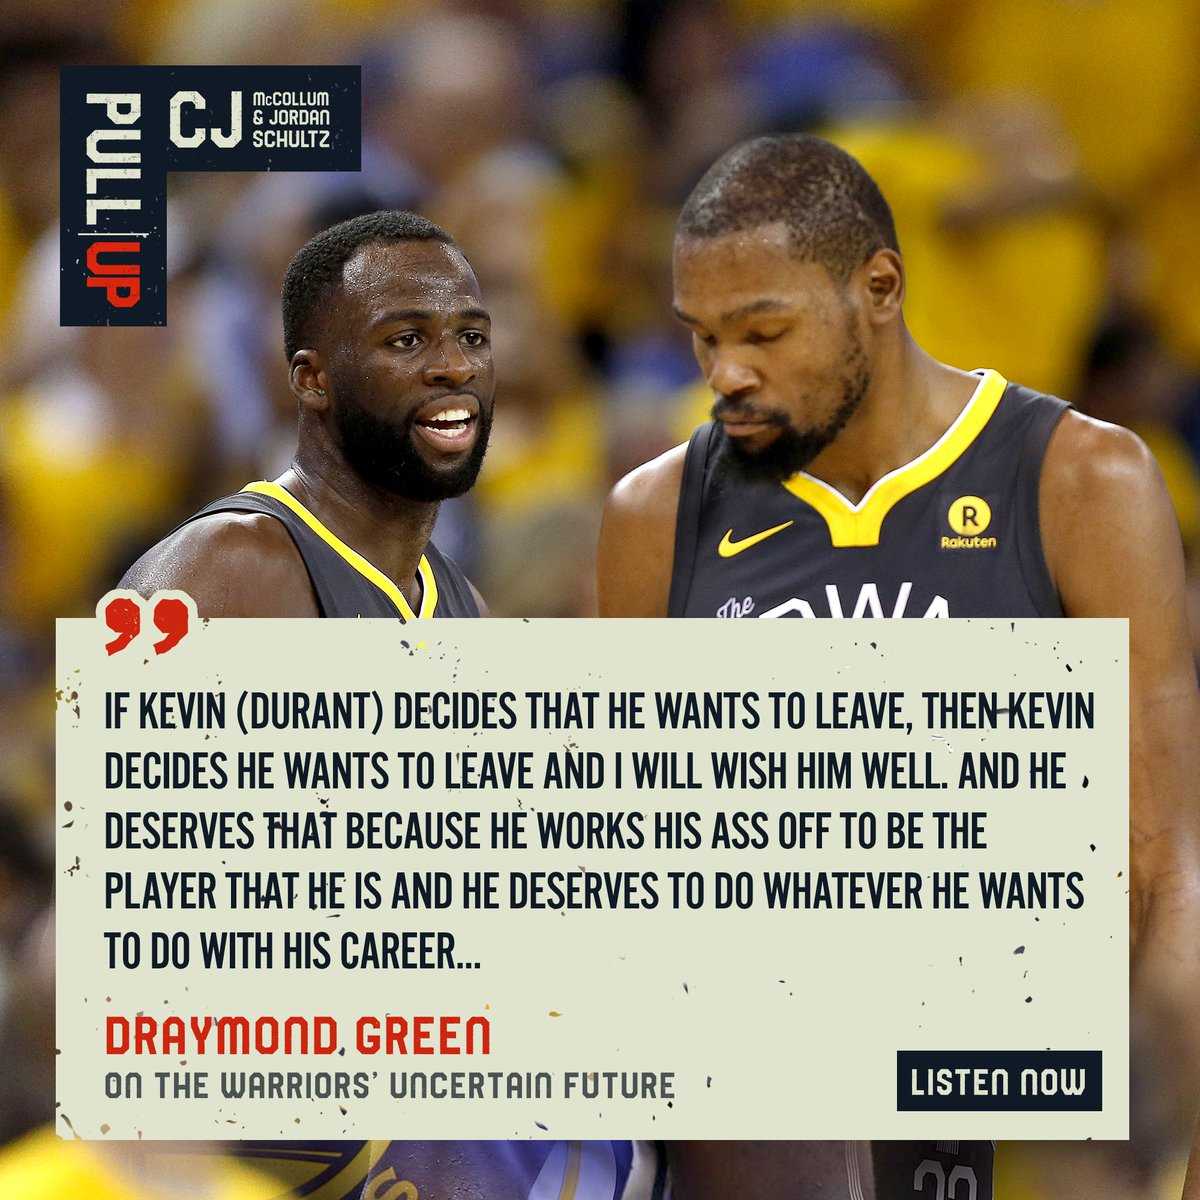 a5c41dc9d8d0 Draymond Green weighs in on the Warriors  uncertain 2019 free agency. Full  episode of the Pull Up Podcast (with CJ McCollum   Jordan Schultz) out  tomorrow.